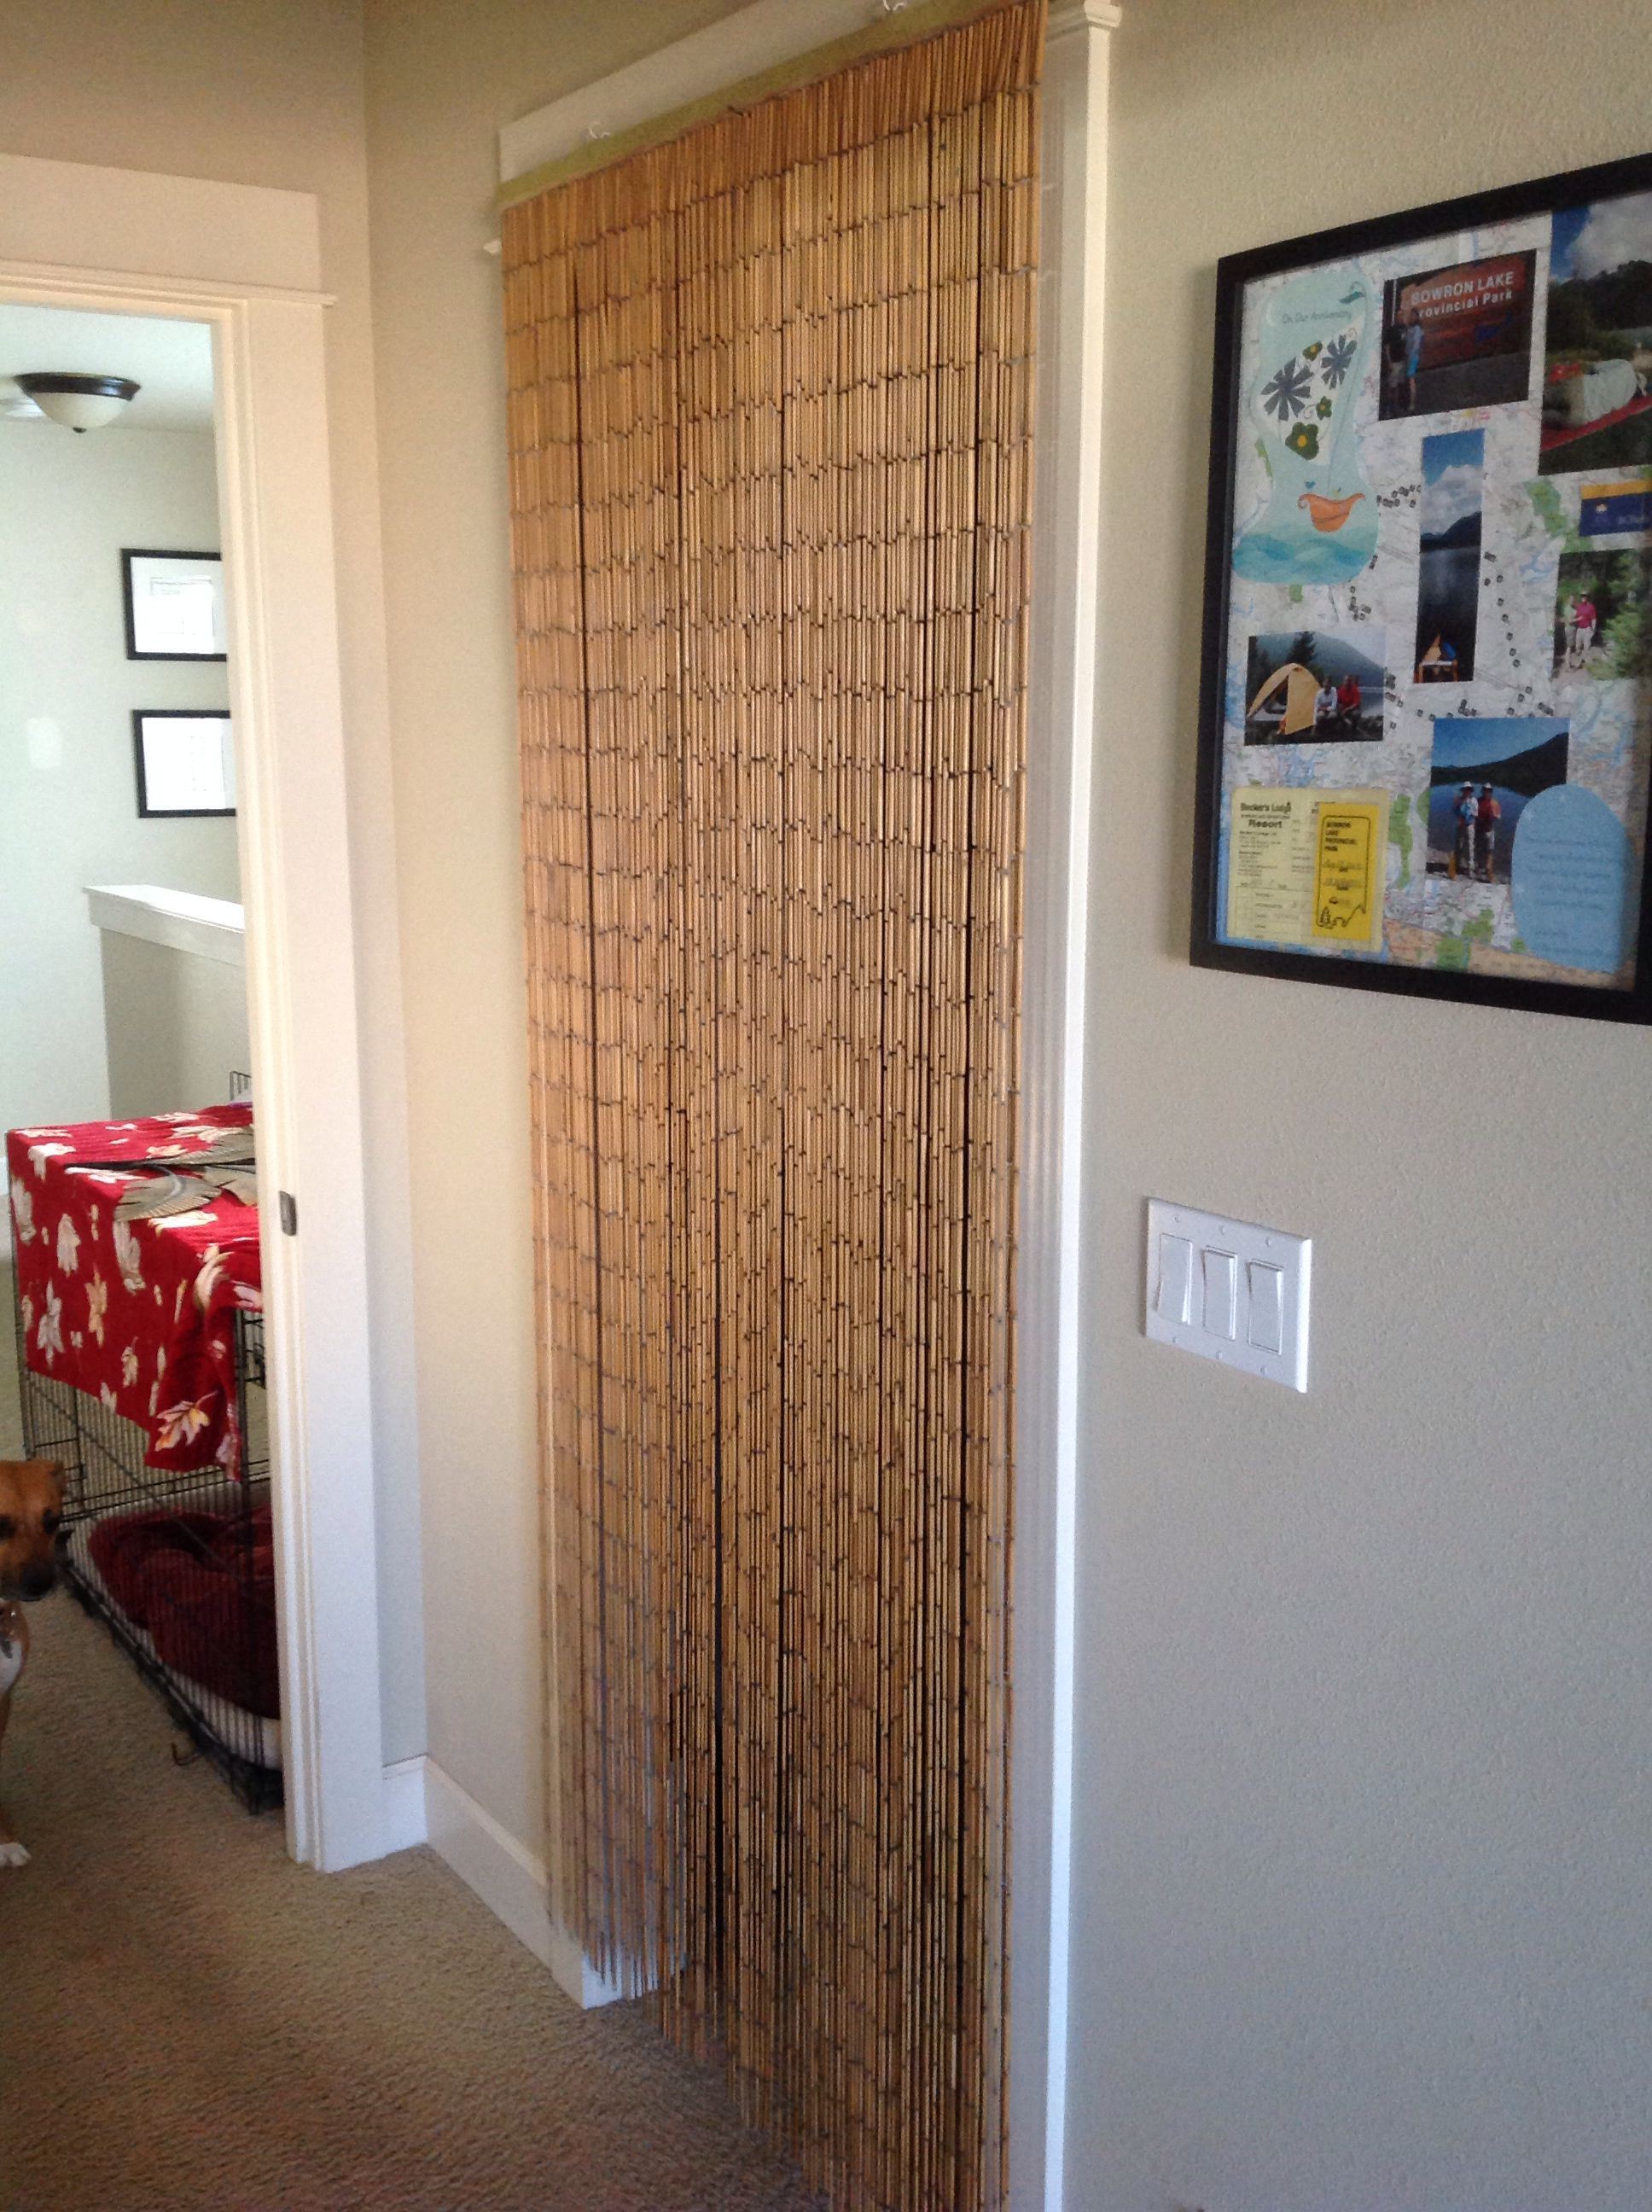 Replaced The Closet Door That Was Always In The Way With A Bamboo